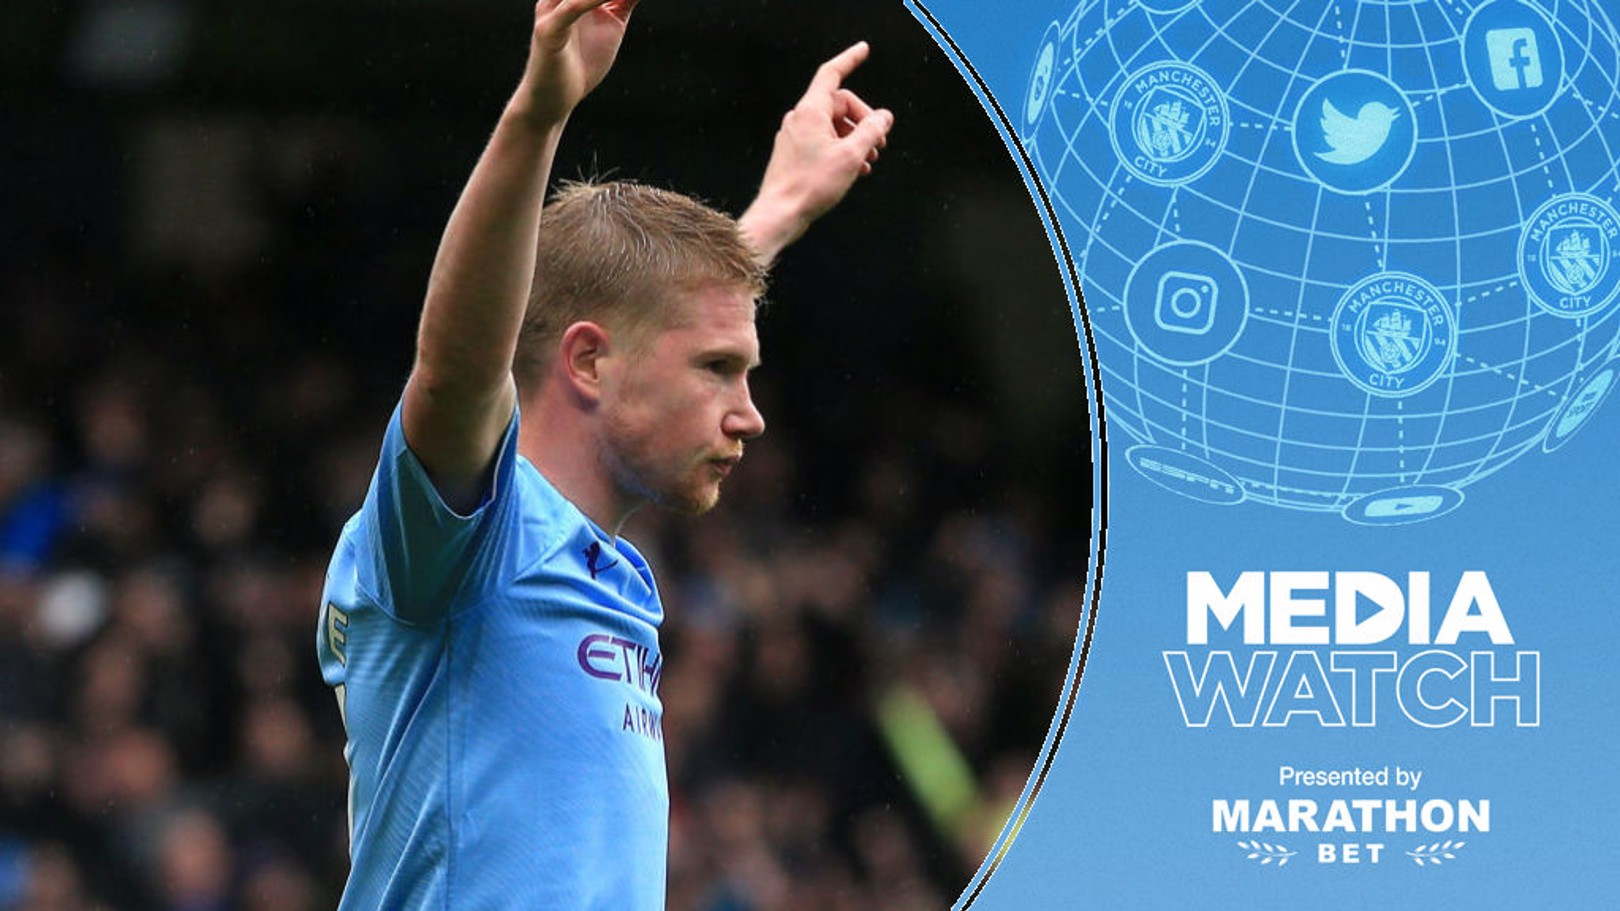 MEDIA WATCH: KDB is ranked as the best in the Premier League so far this season